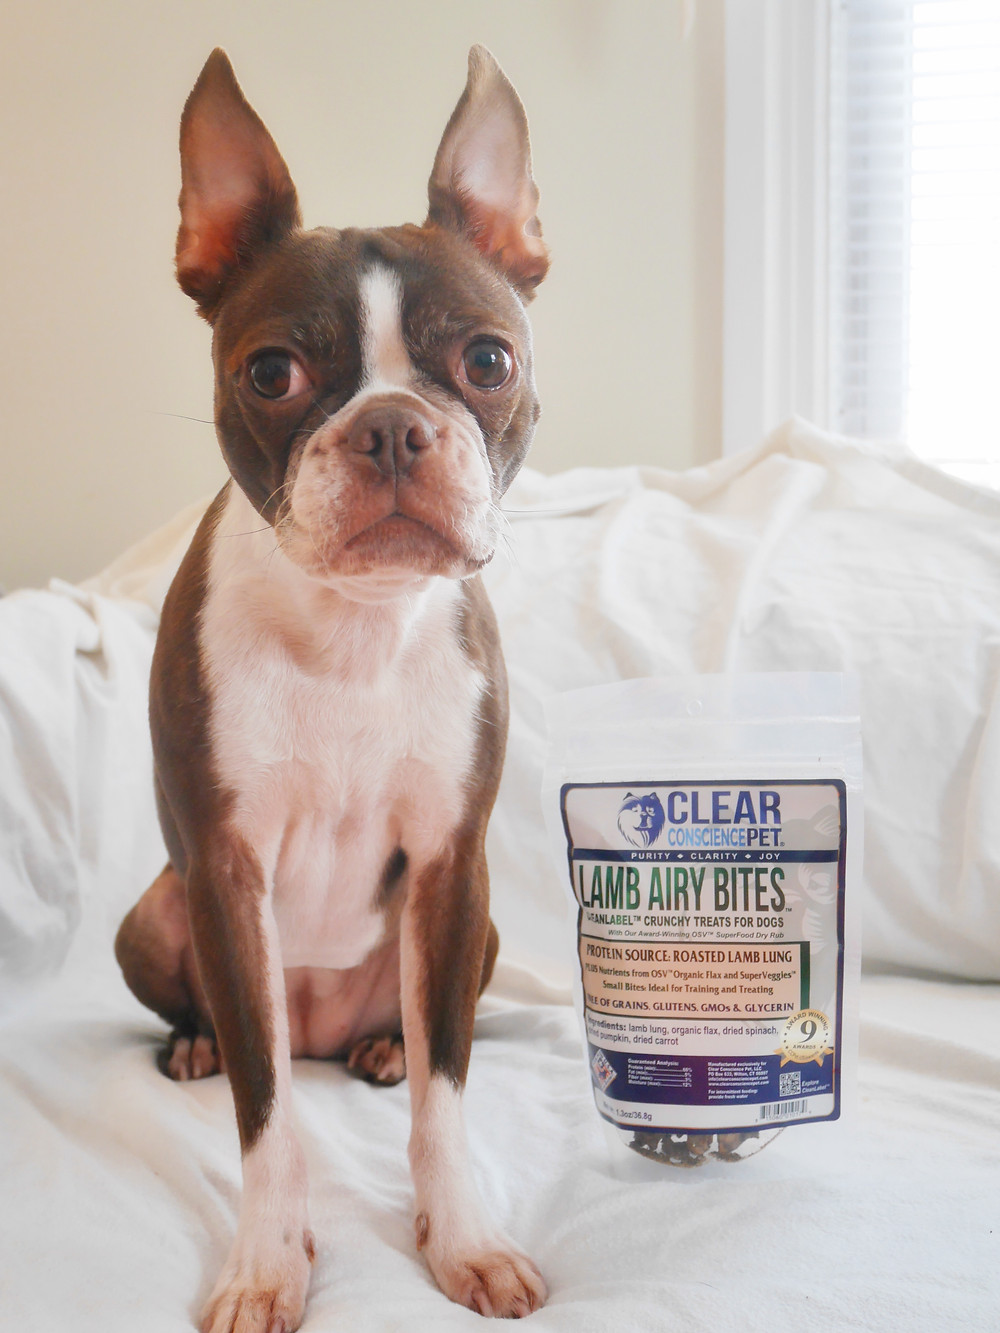 Bean & Lamb Airy Bites by Clear Conscience Pet